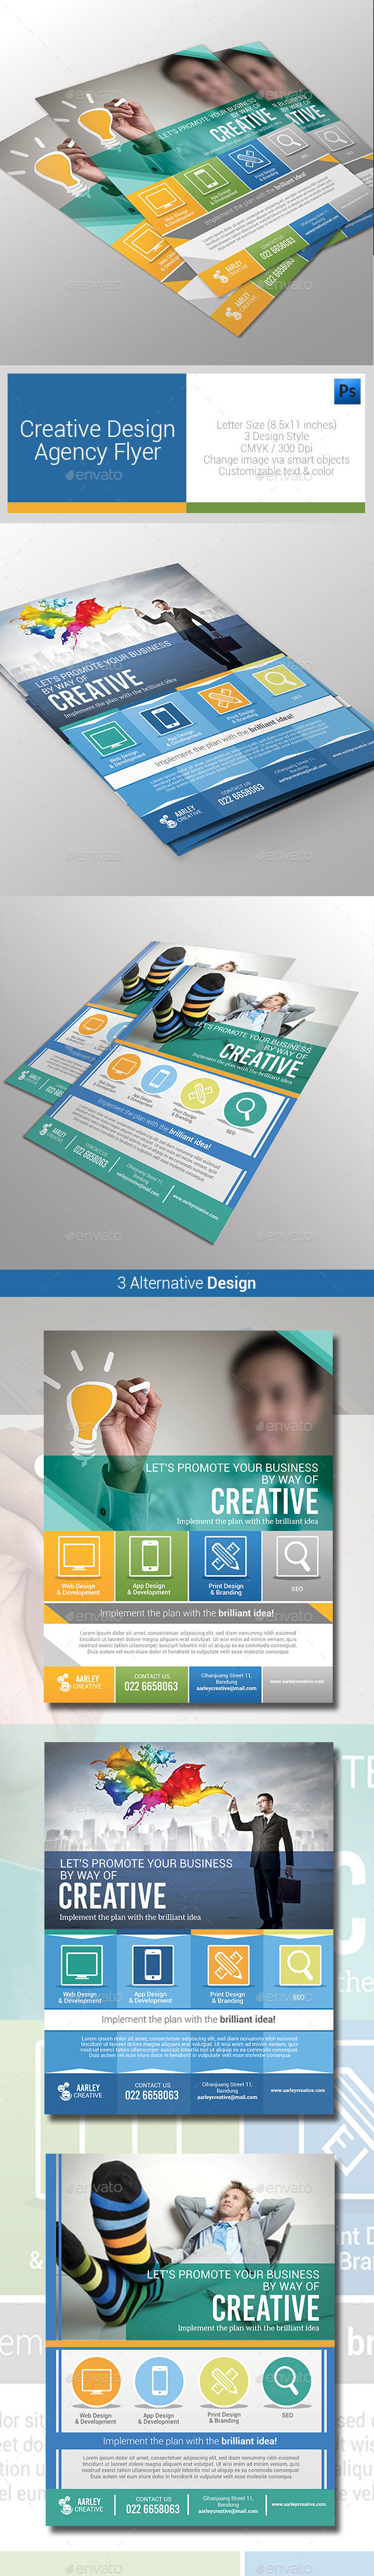 GraphicRiver Creative Design Agency Flyers 10147959